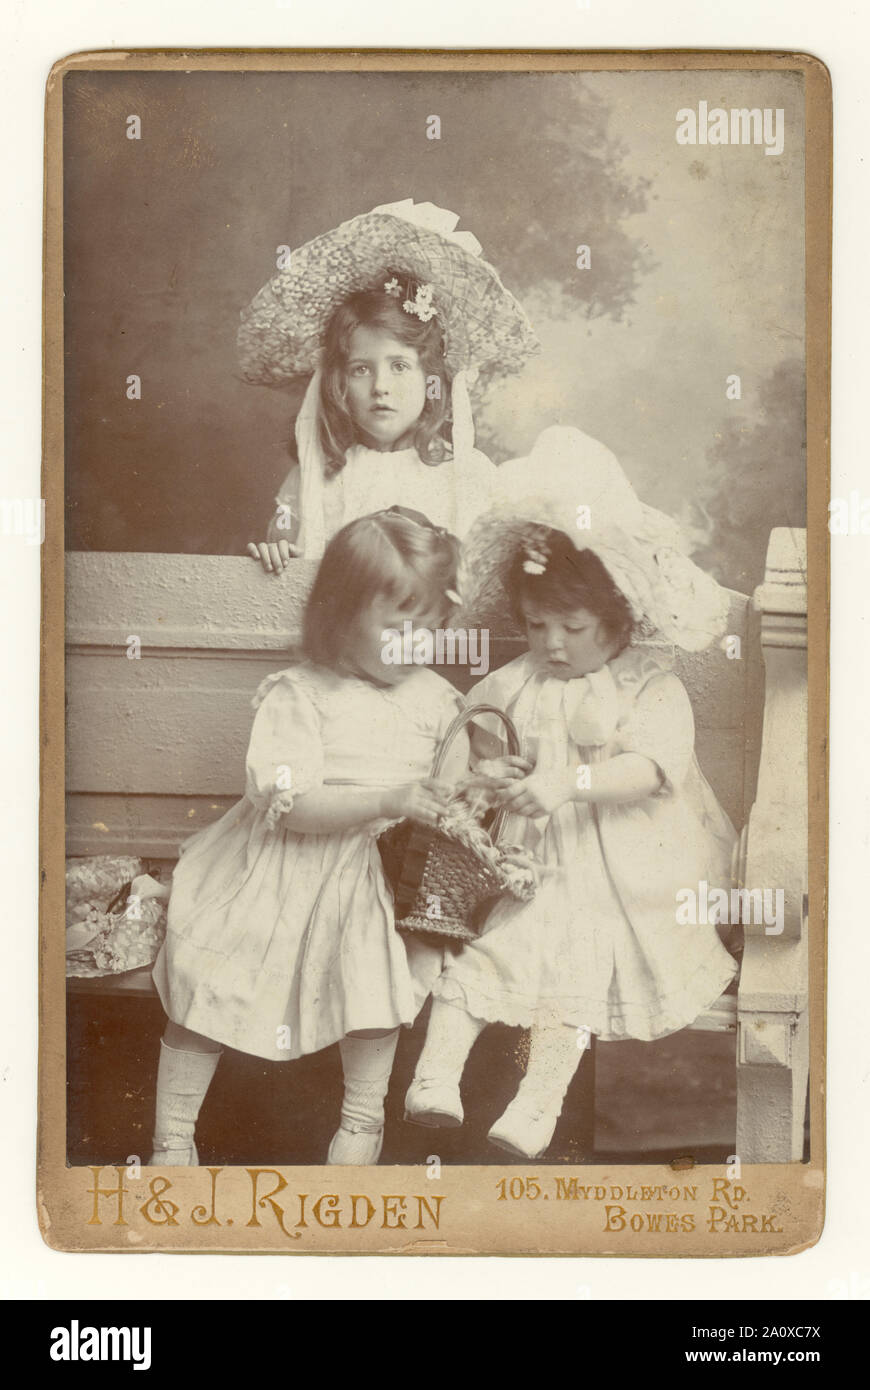 Original antique Edwardian cabinet card, charming studio portrait of three pretty young siblings, sisters, in summer clothes, wearing large straw hats and white smocks, Bowes Park, London, U.K. circa 1904. Stock Photo